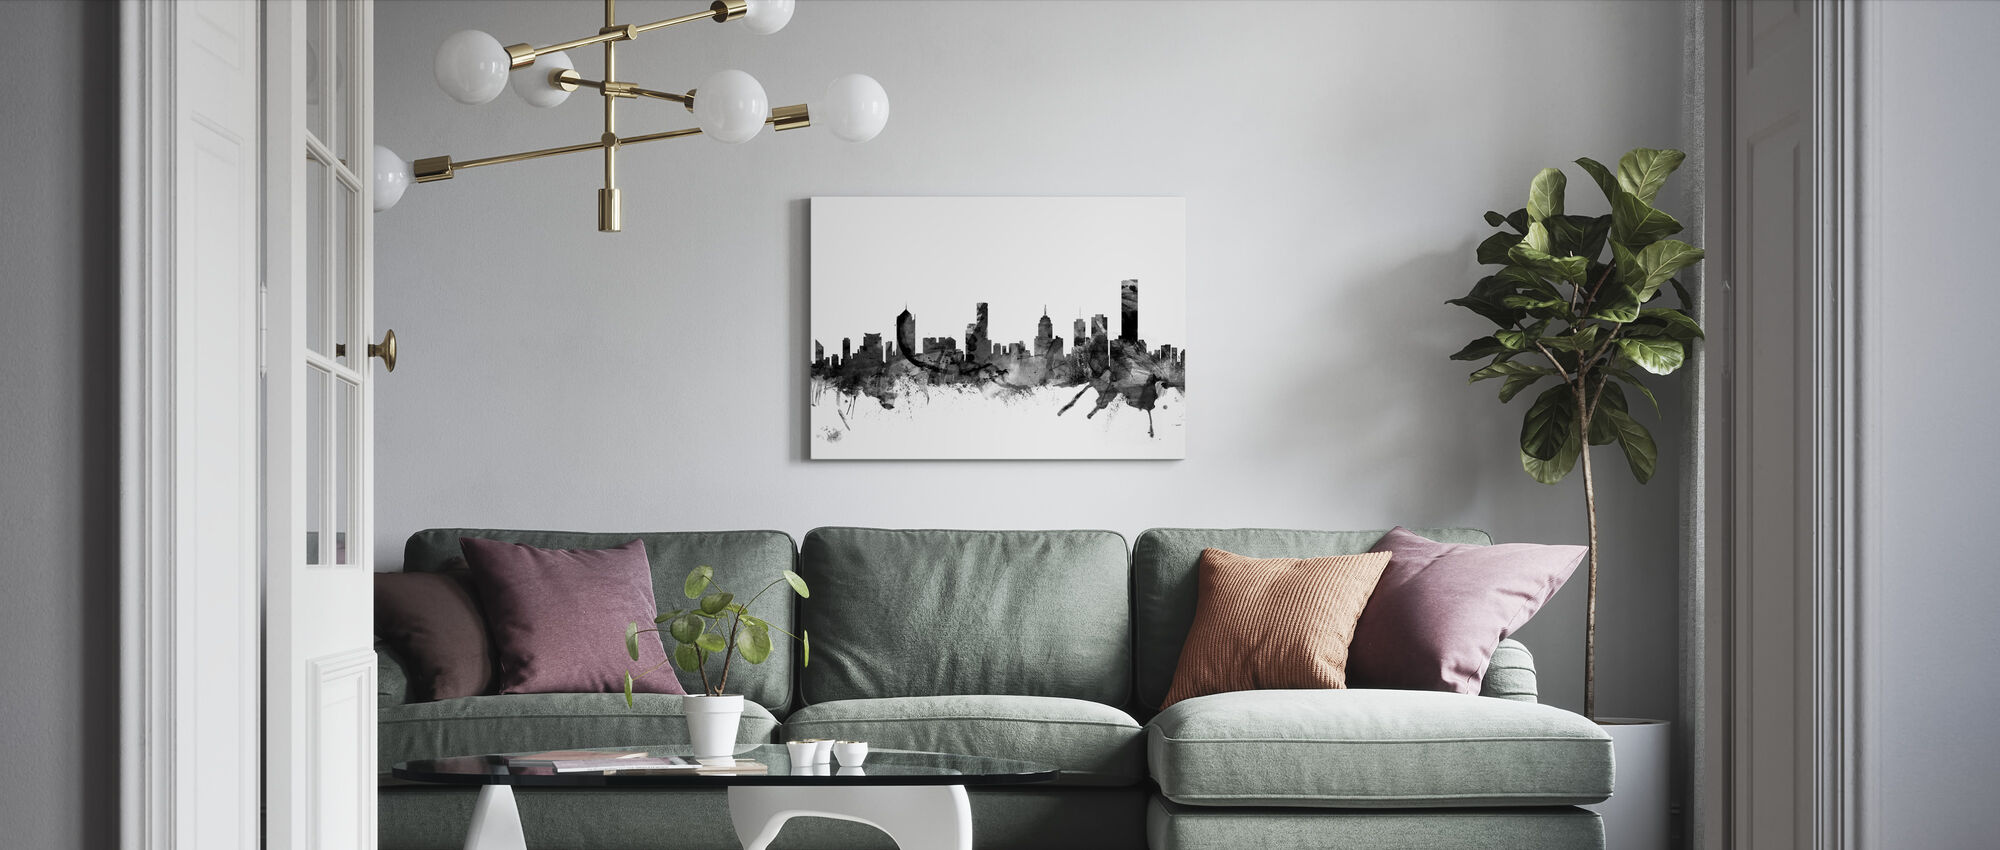 Melbourne Skyline Black - Canvas print - Living Room